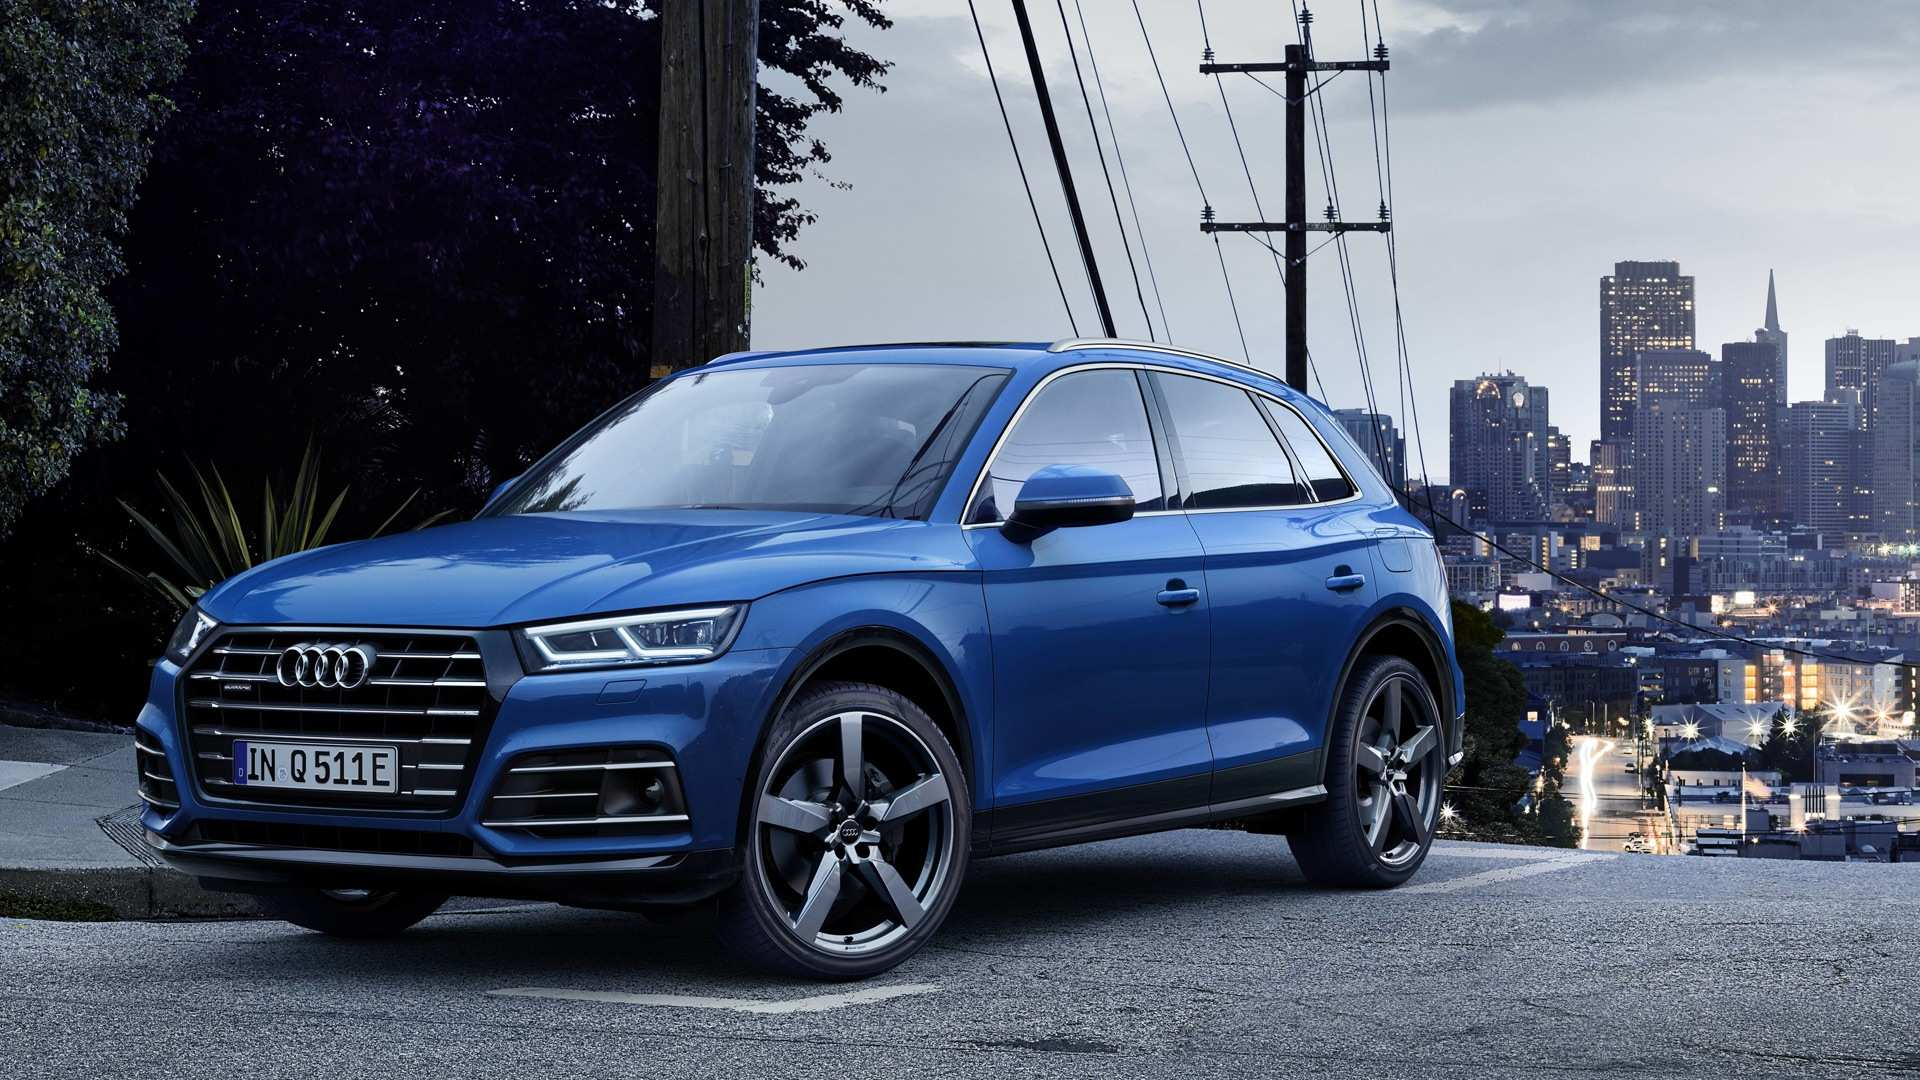 94 New Audi Q5 Hybrid 2020 Prices